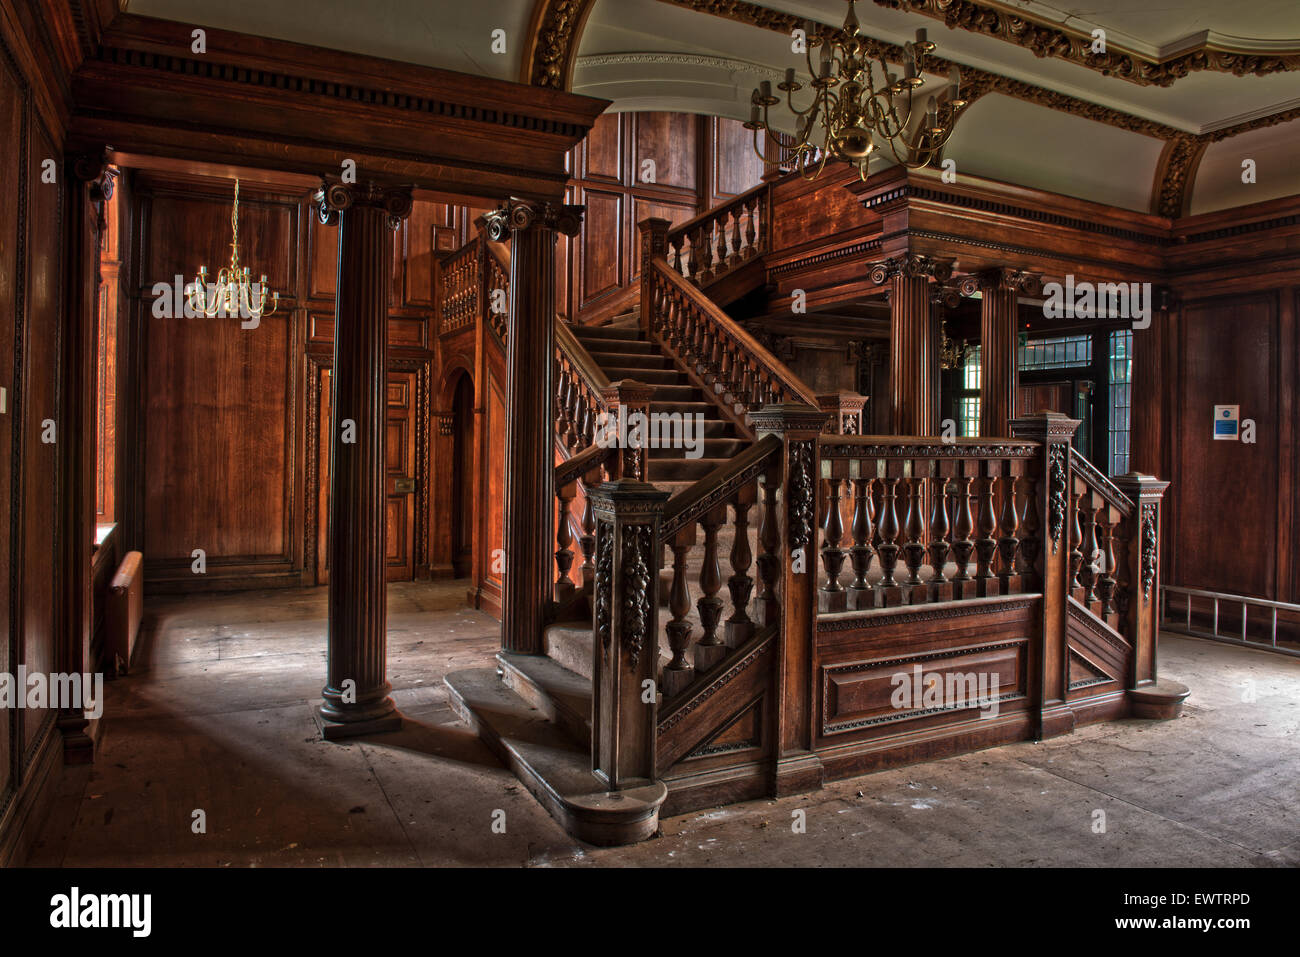 Stunning detail on the carved oak staircase inside Silverlands Orphanage, Chertsey, Surrey, UK - Stock Image